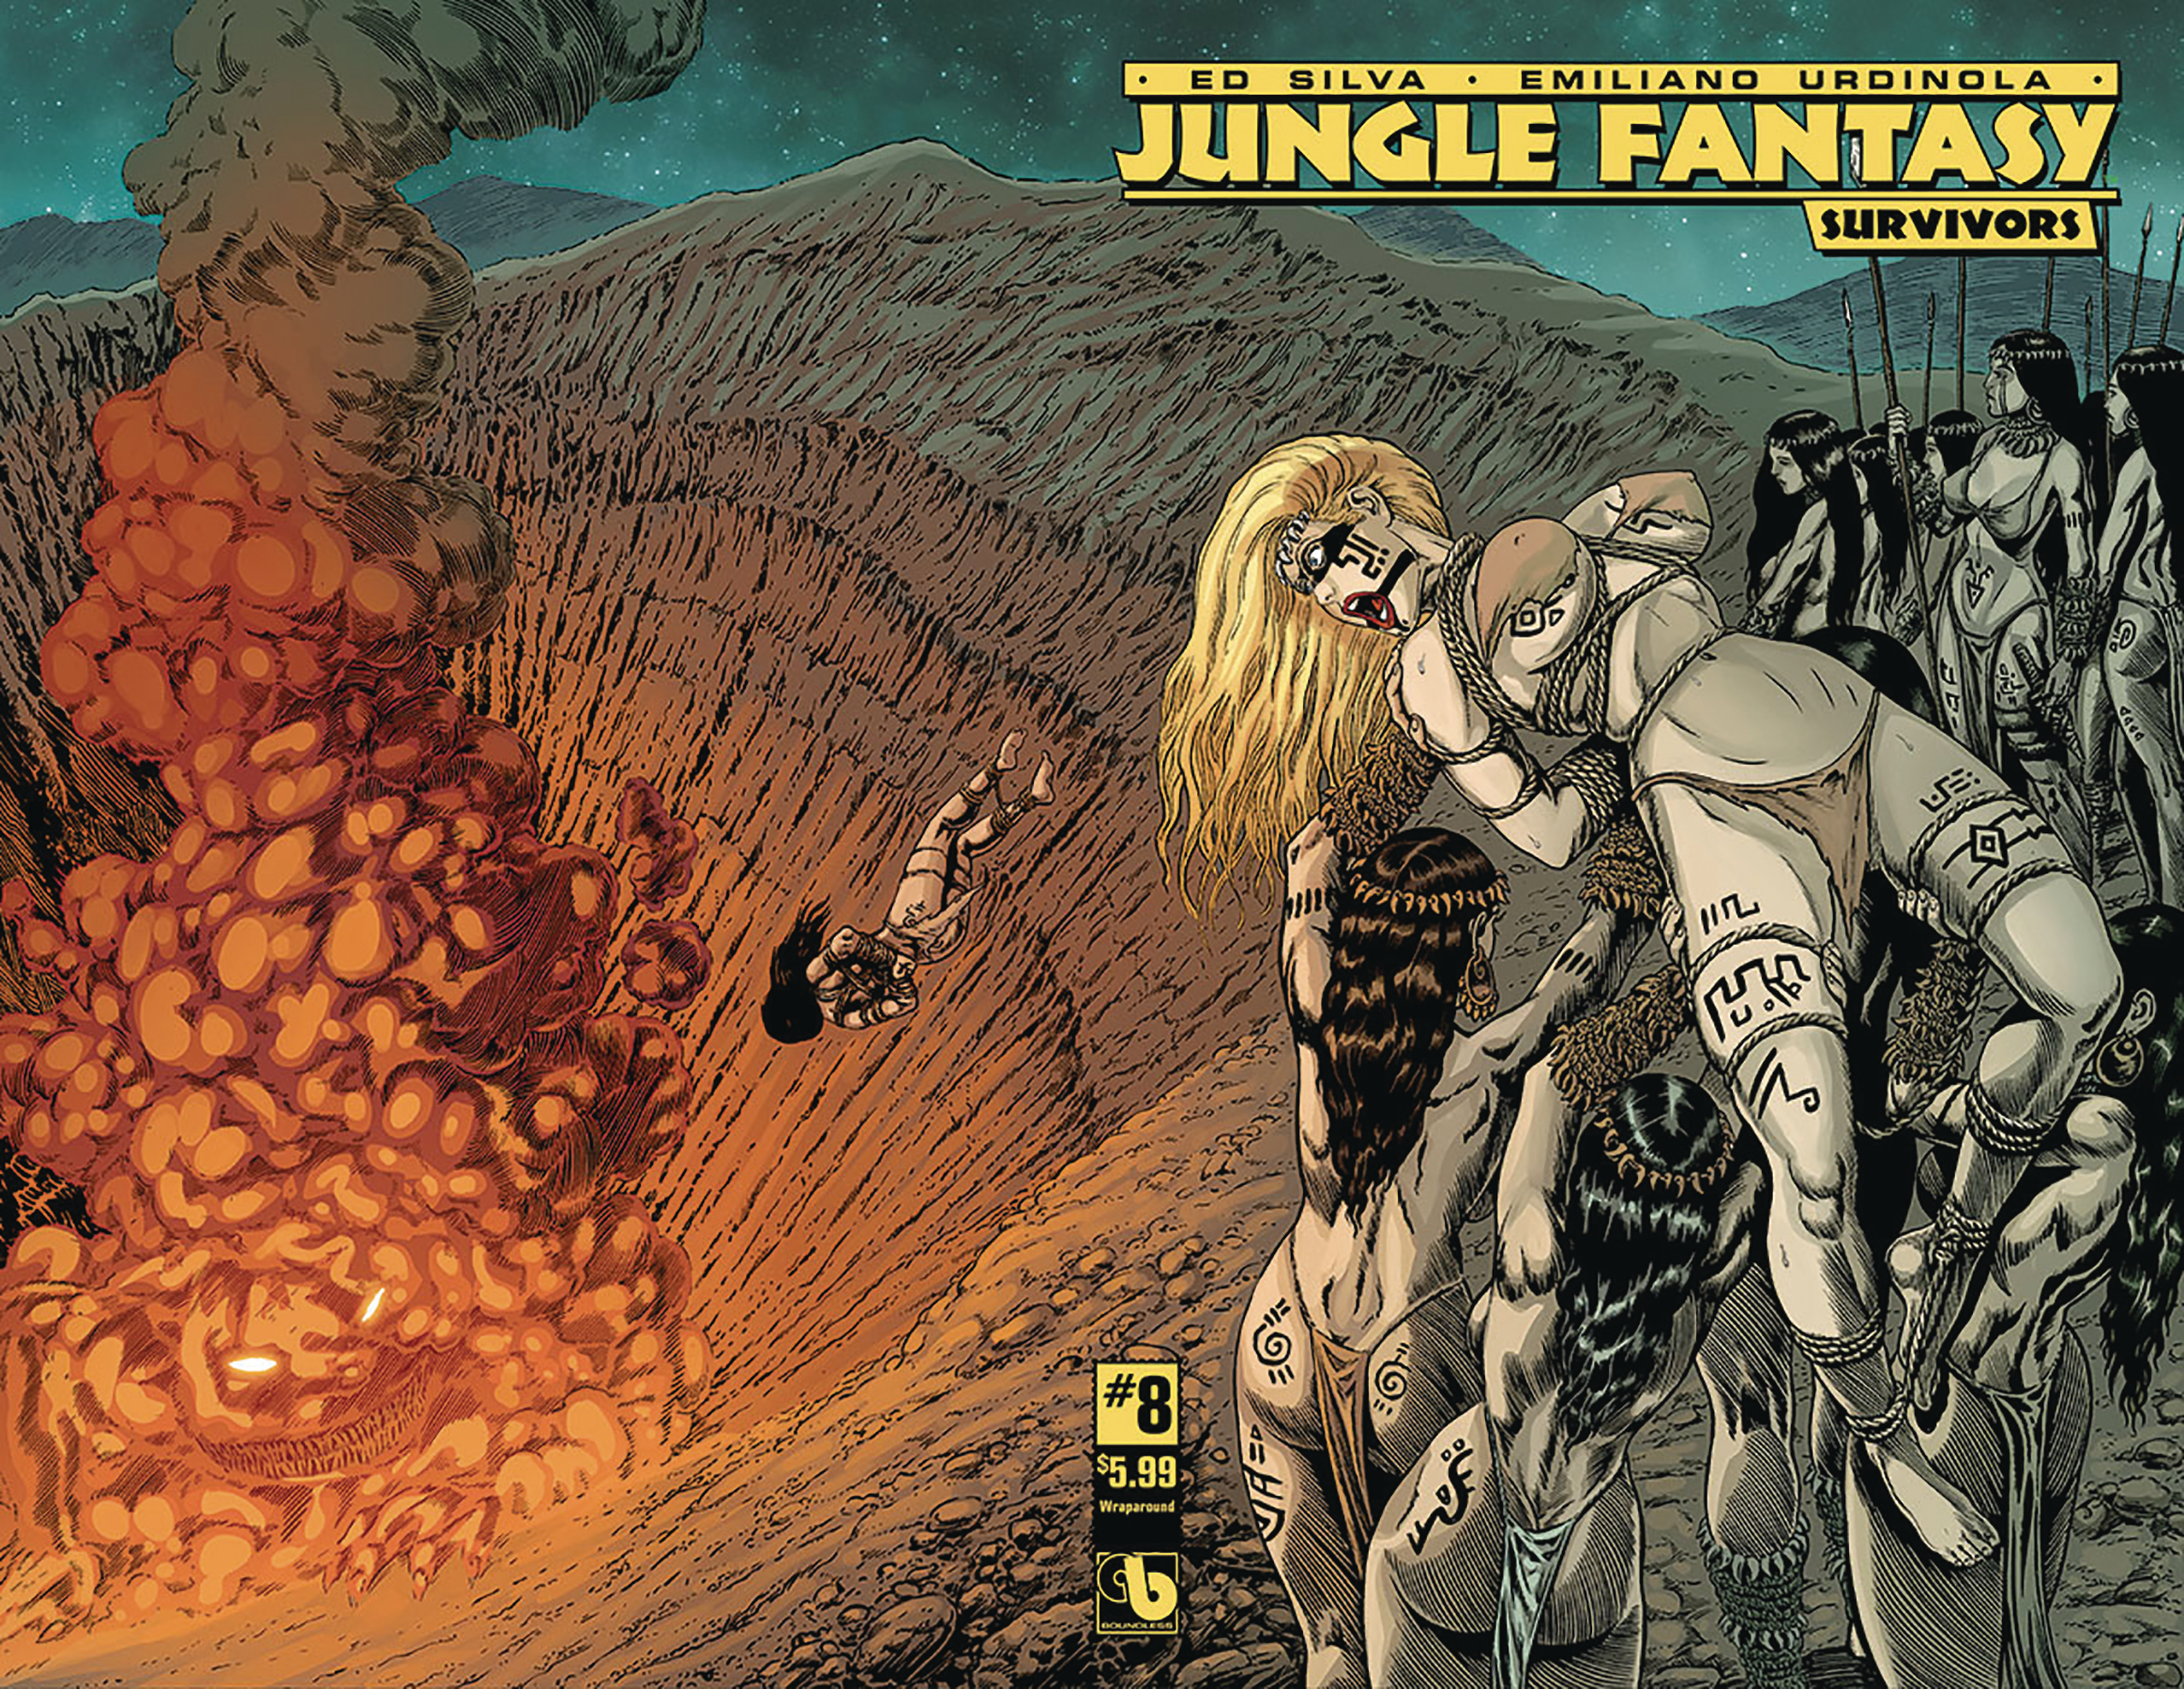 JUNGLE FANTASY SURVIVORS #8 WRAP (MR)